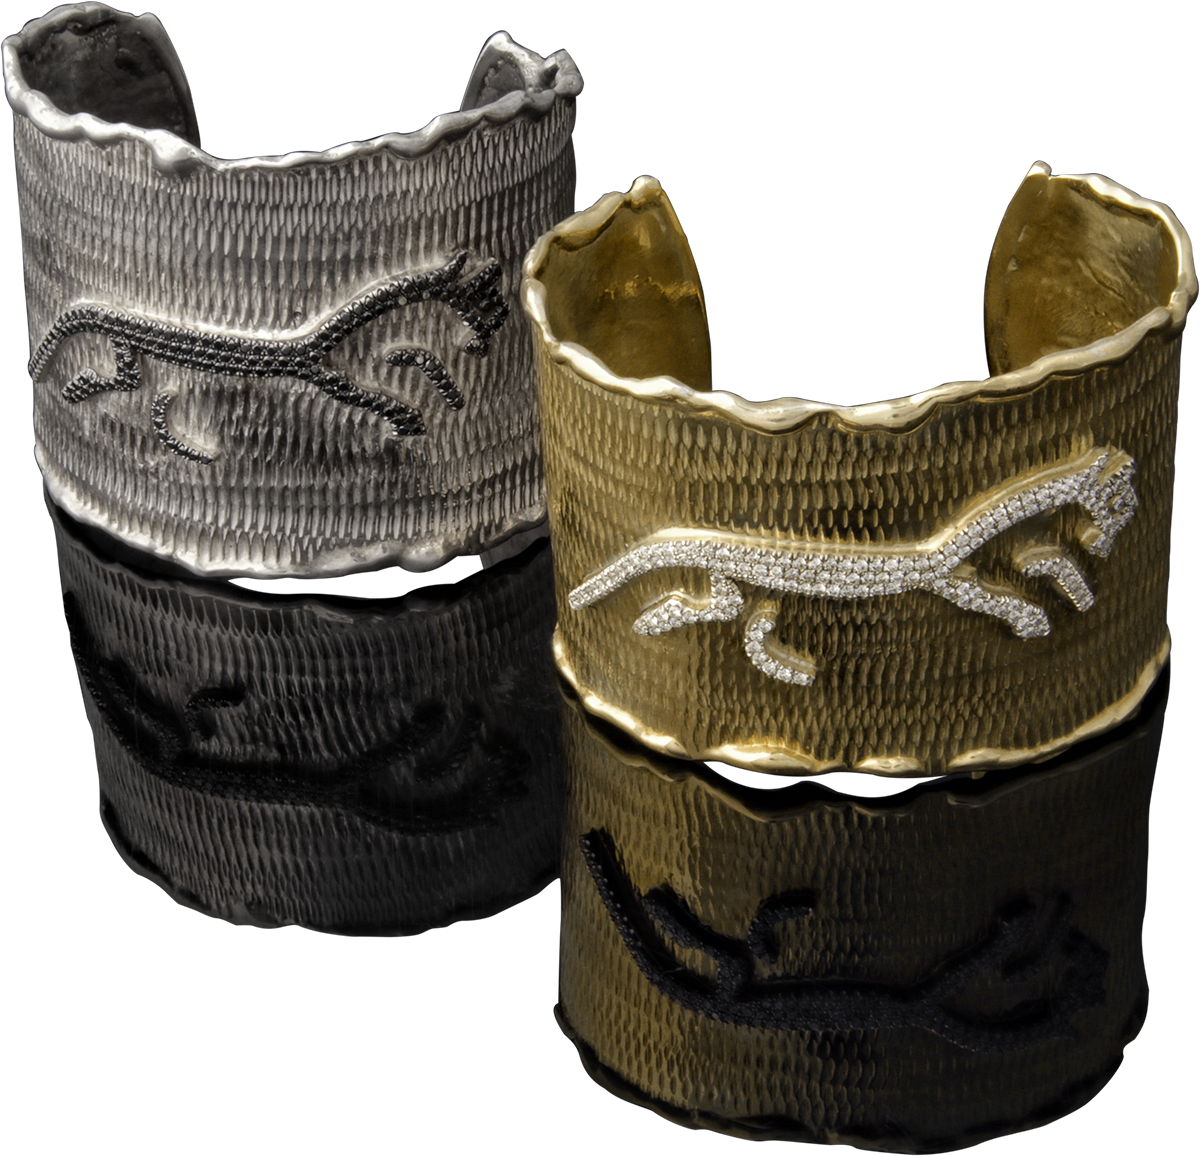 FRIDA | Fine Jewellery. Caribou Collection, Spirit cuffs. Custom designed sterling silver 18kt yellow gold cuffs with diamonds set in 18kt white gold. Inspired by the Uffington White Horse.png